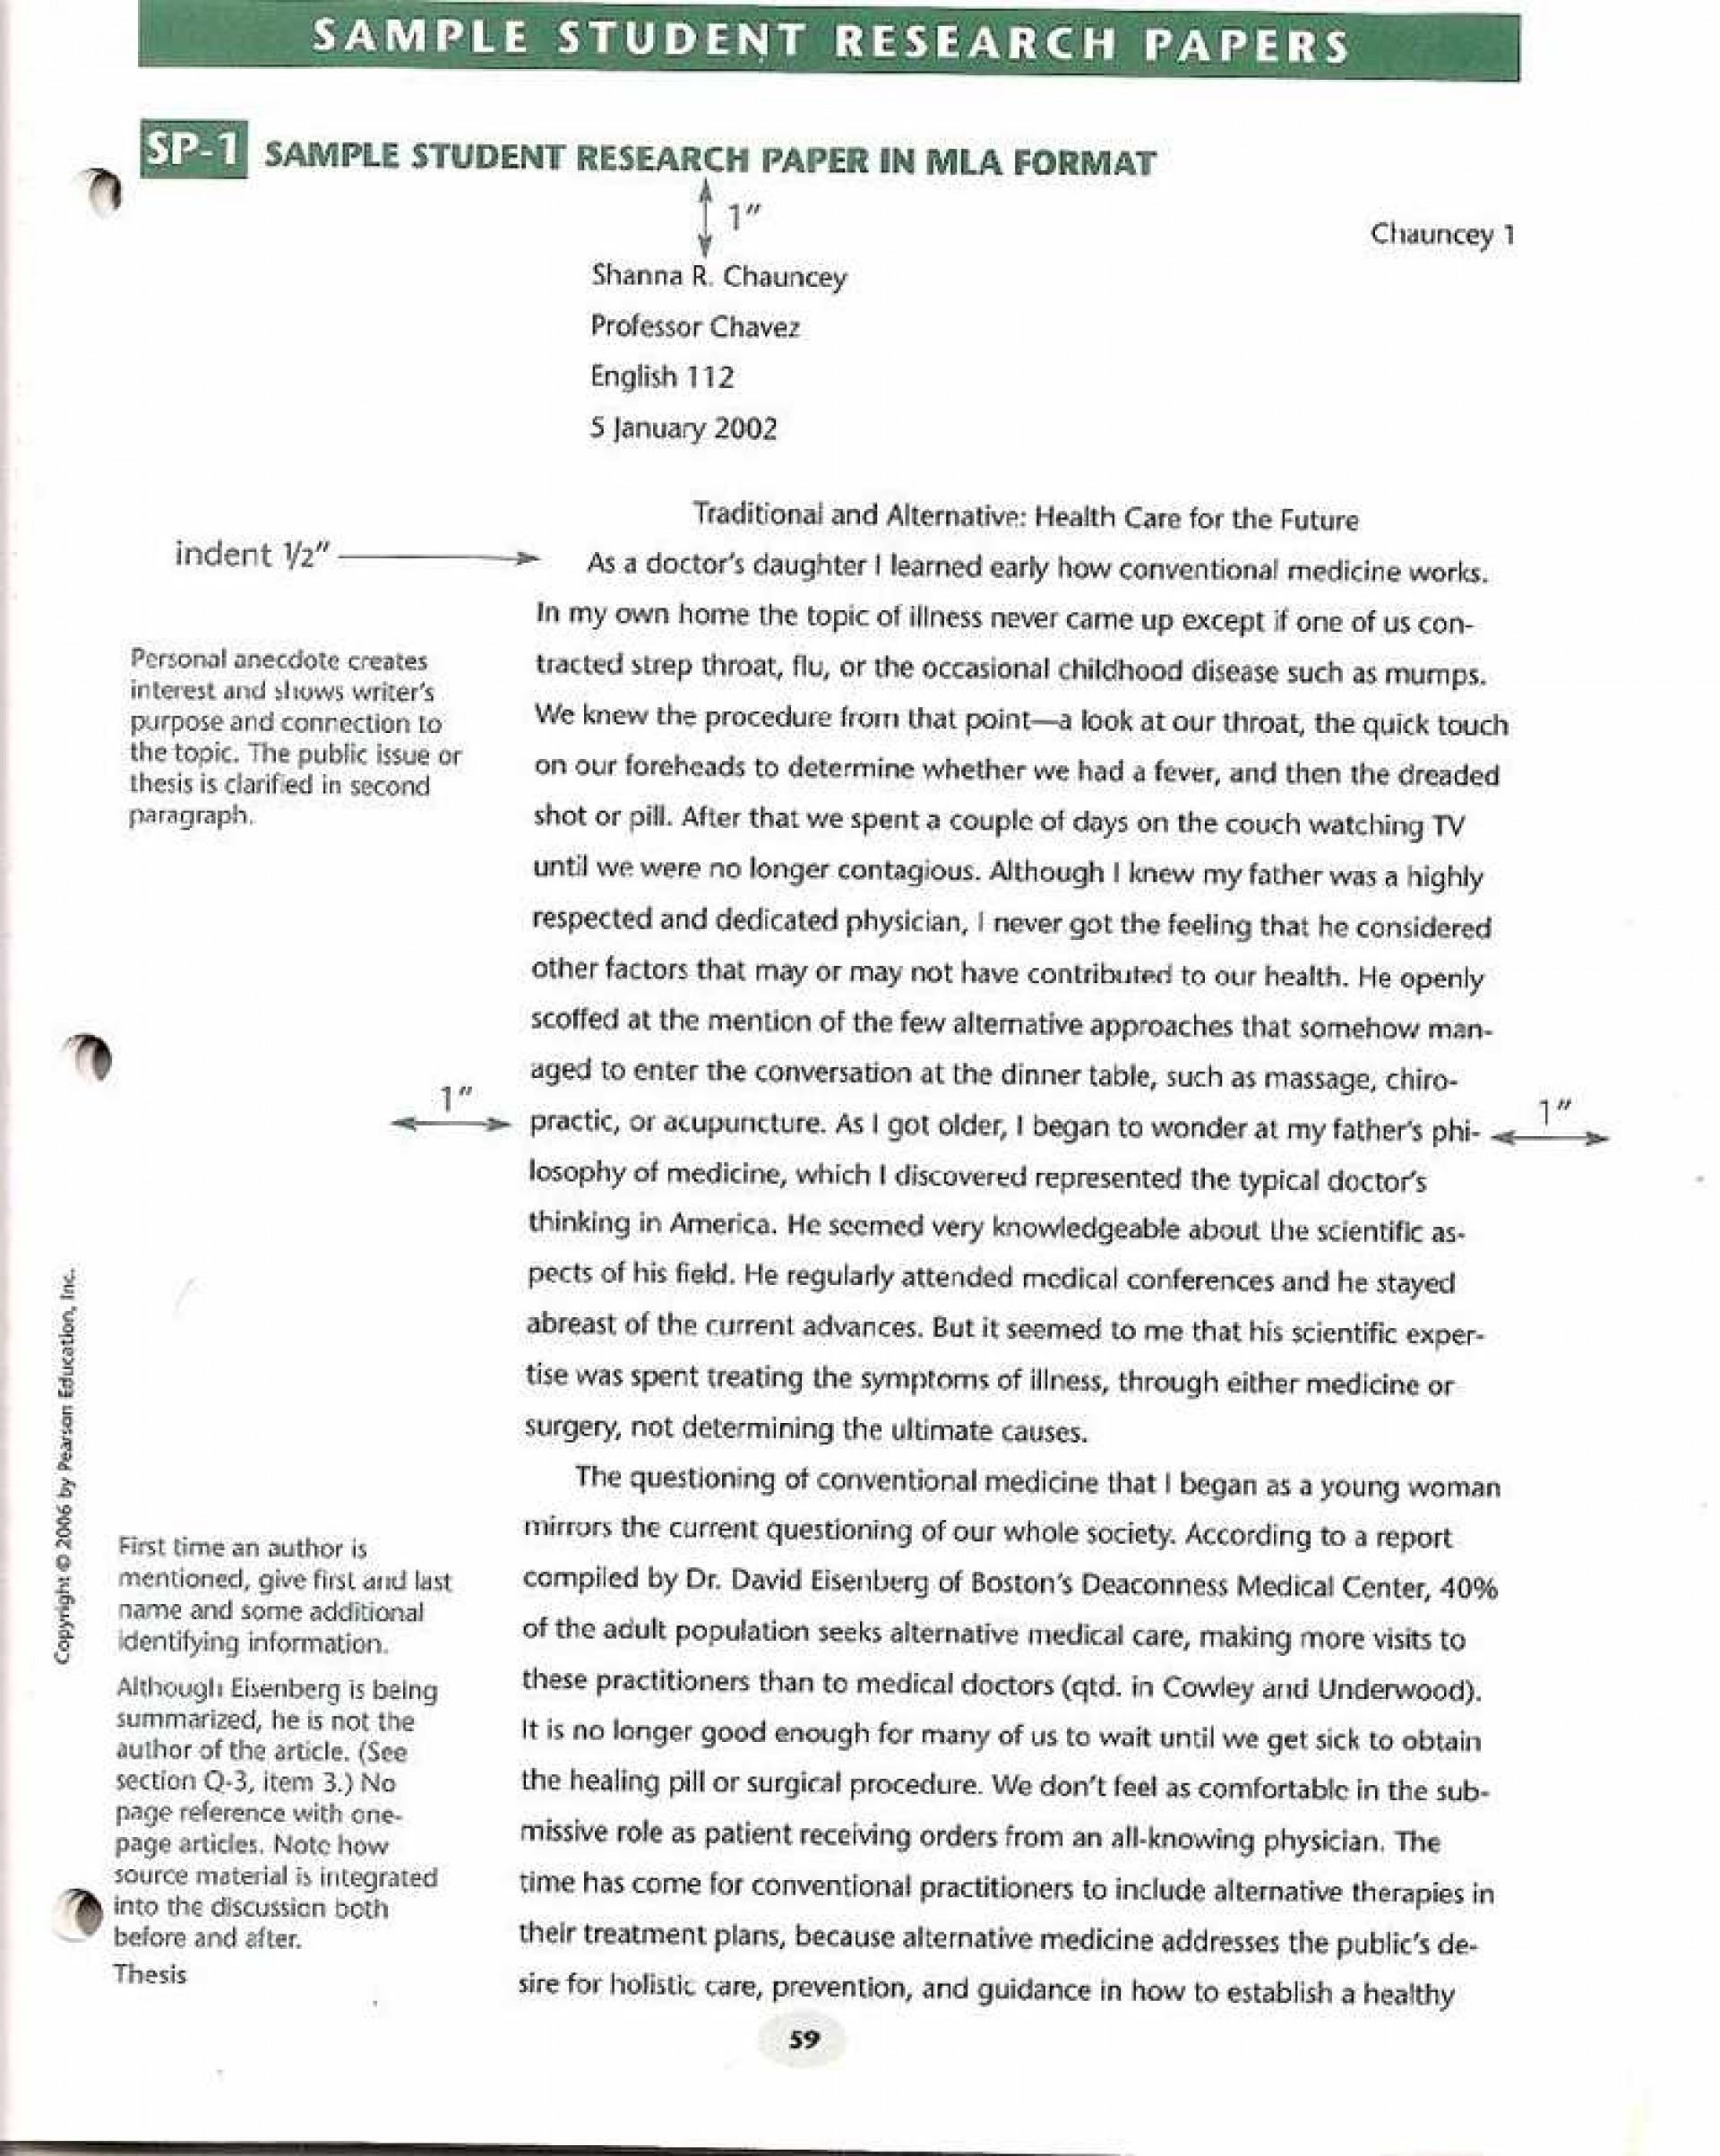 020 Research Paper Best Topics Stupendous Reddit Sports Top 10 In Computer Science 1920